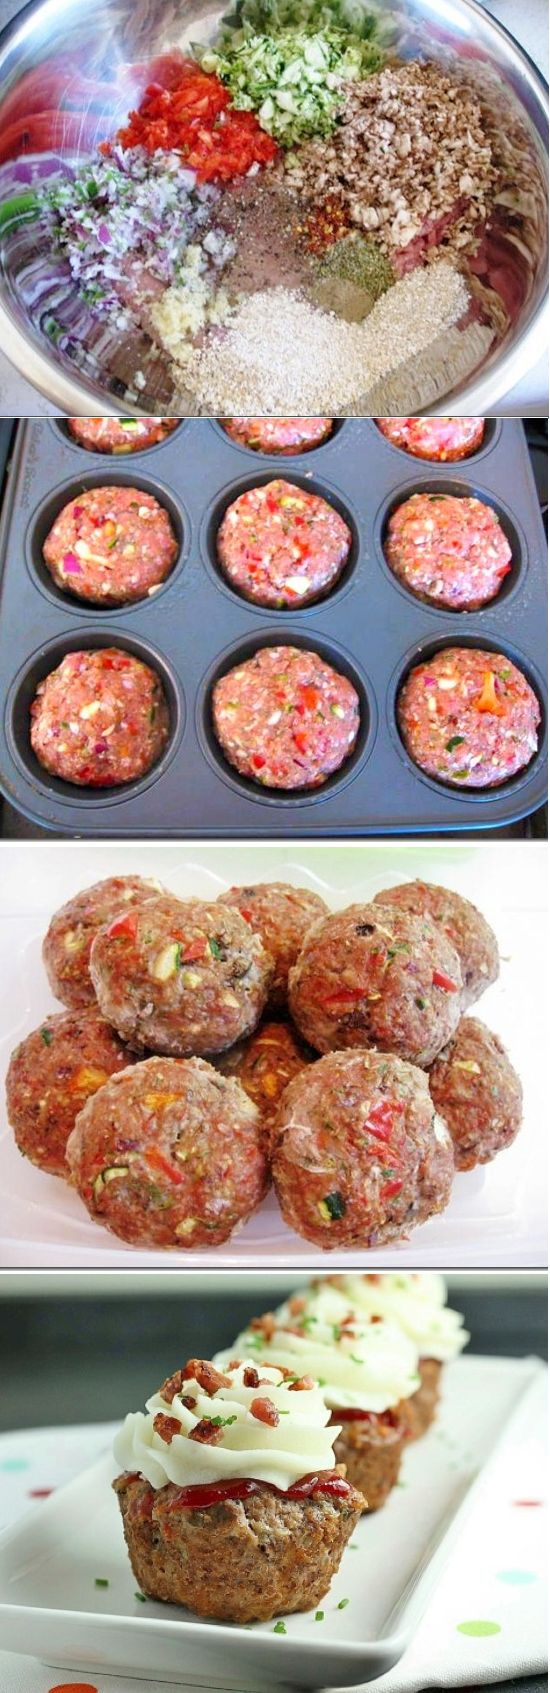 Meatball cupcakes with mashed potato frosting. Just want to learn how to make…